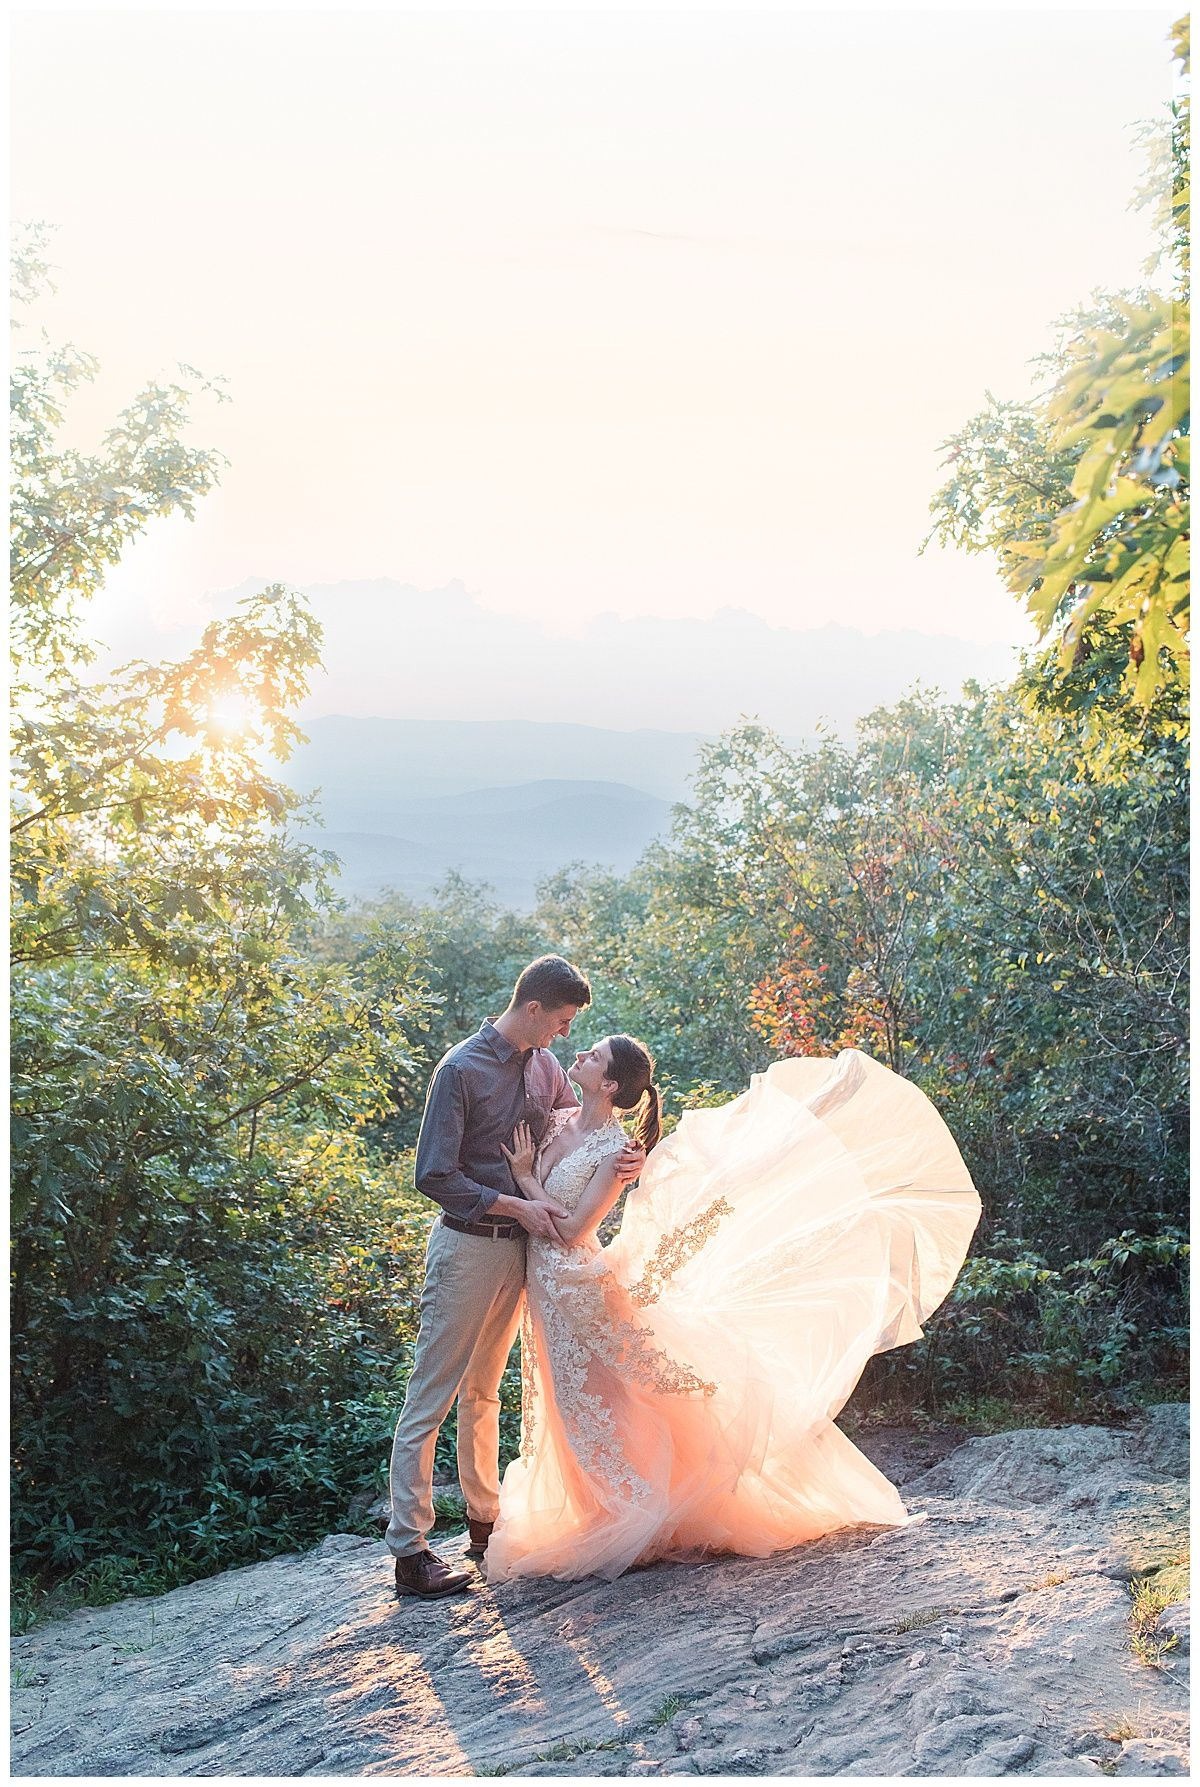 Elopement Photography in Northern Mountains